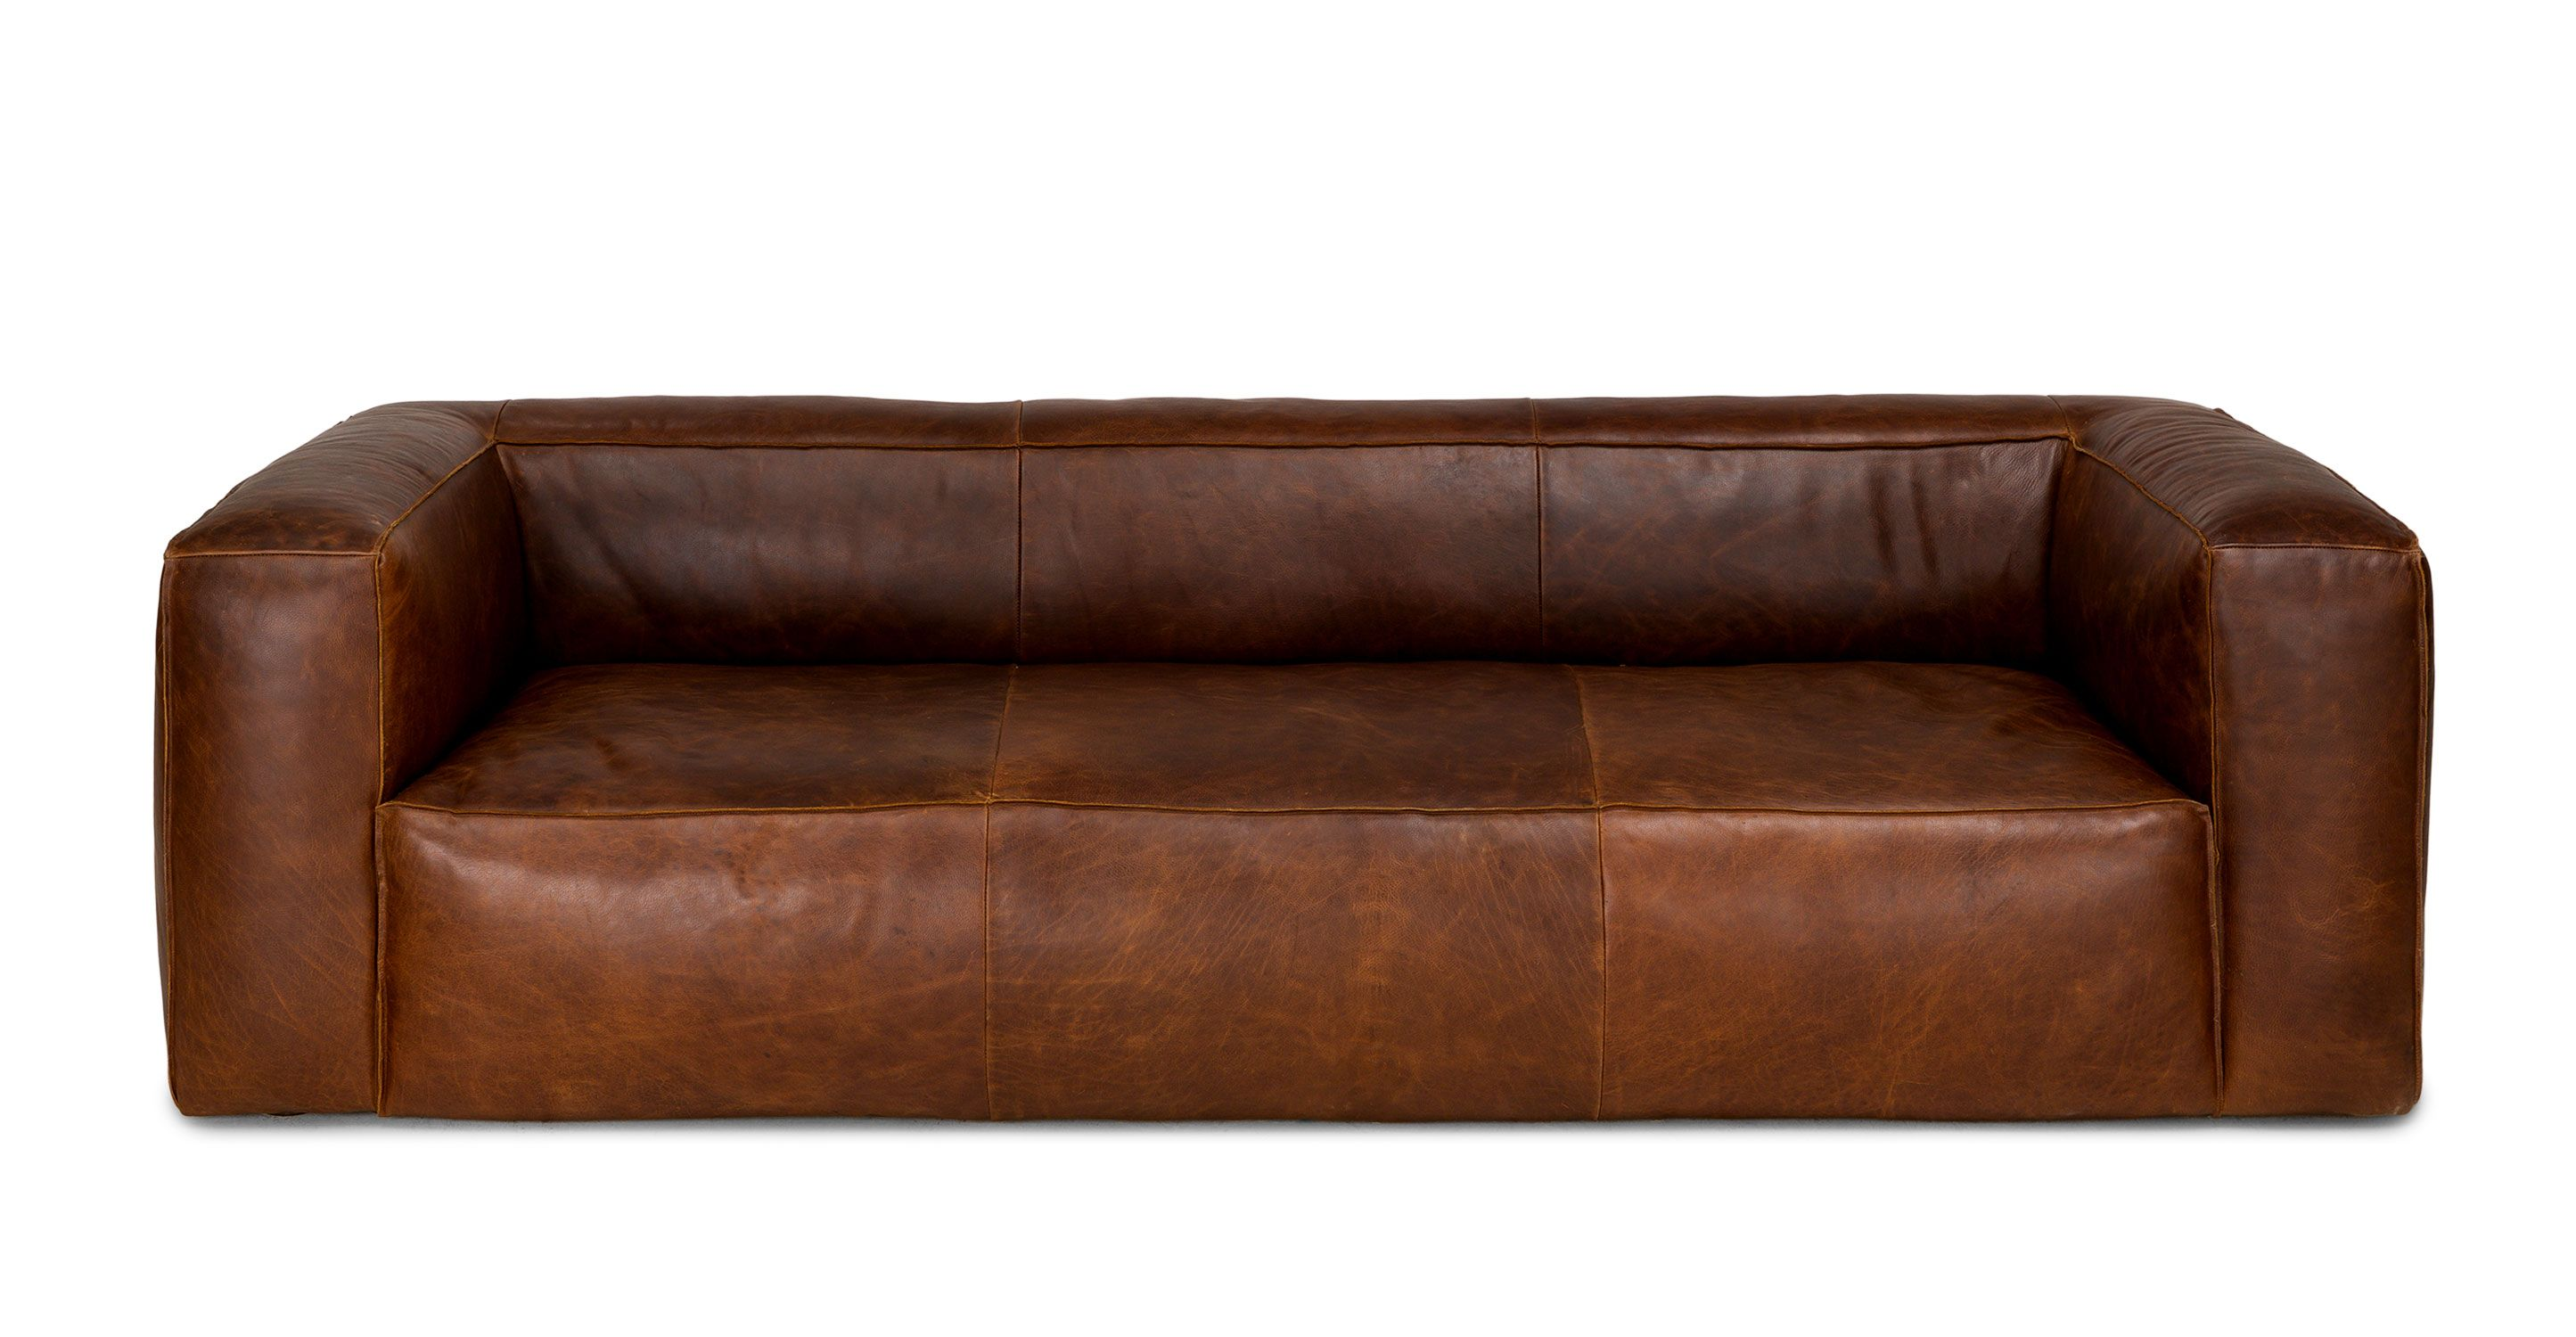 High Quality Cigar Rawhide Brown Sofa   Sofas   Article | Modern, Mid Century And  Scandinavian